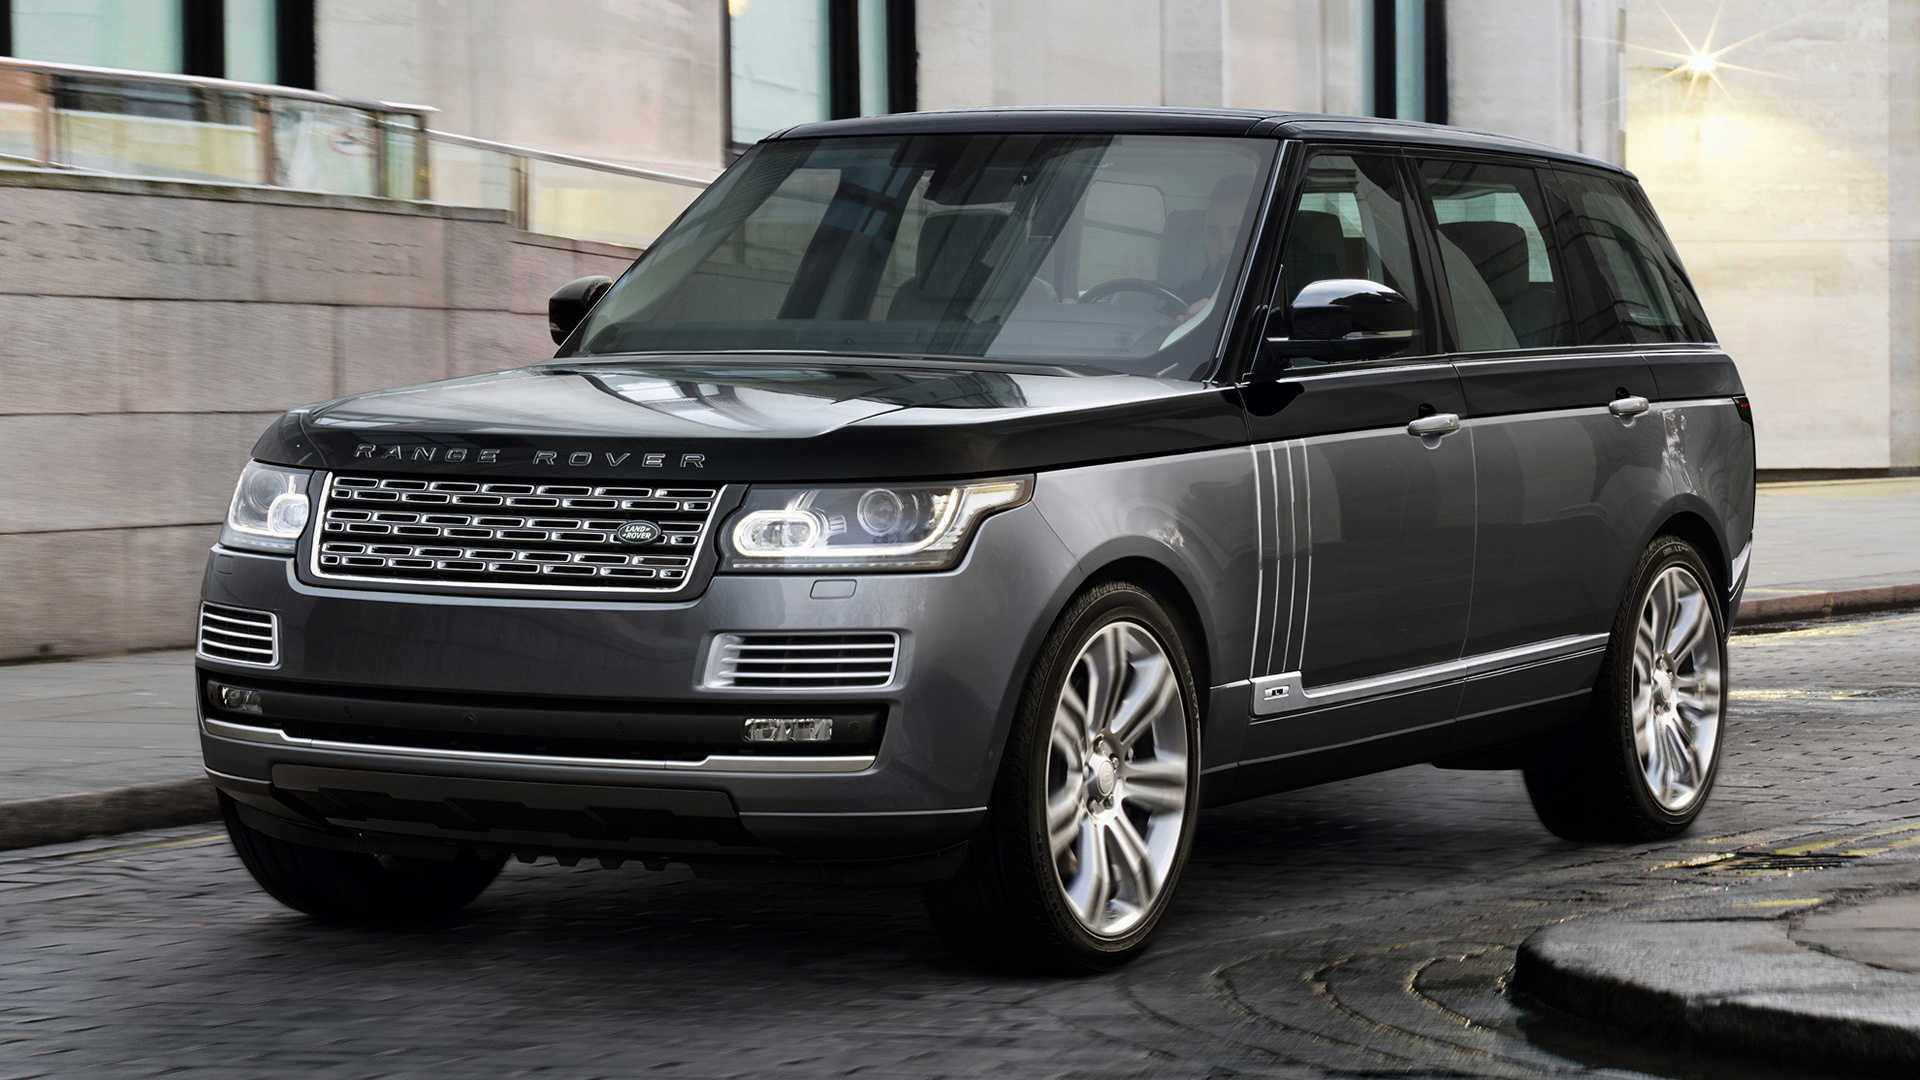 range rover svautobiography lwb 2015 us wallpapers and hd images car pixel. Black Bedroom Furniture Sets. Home Design Ideas